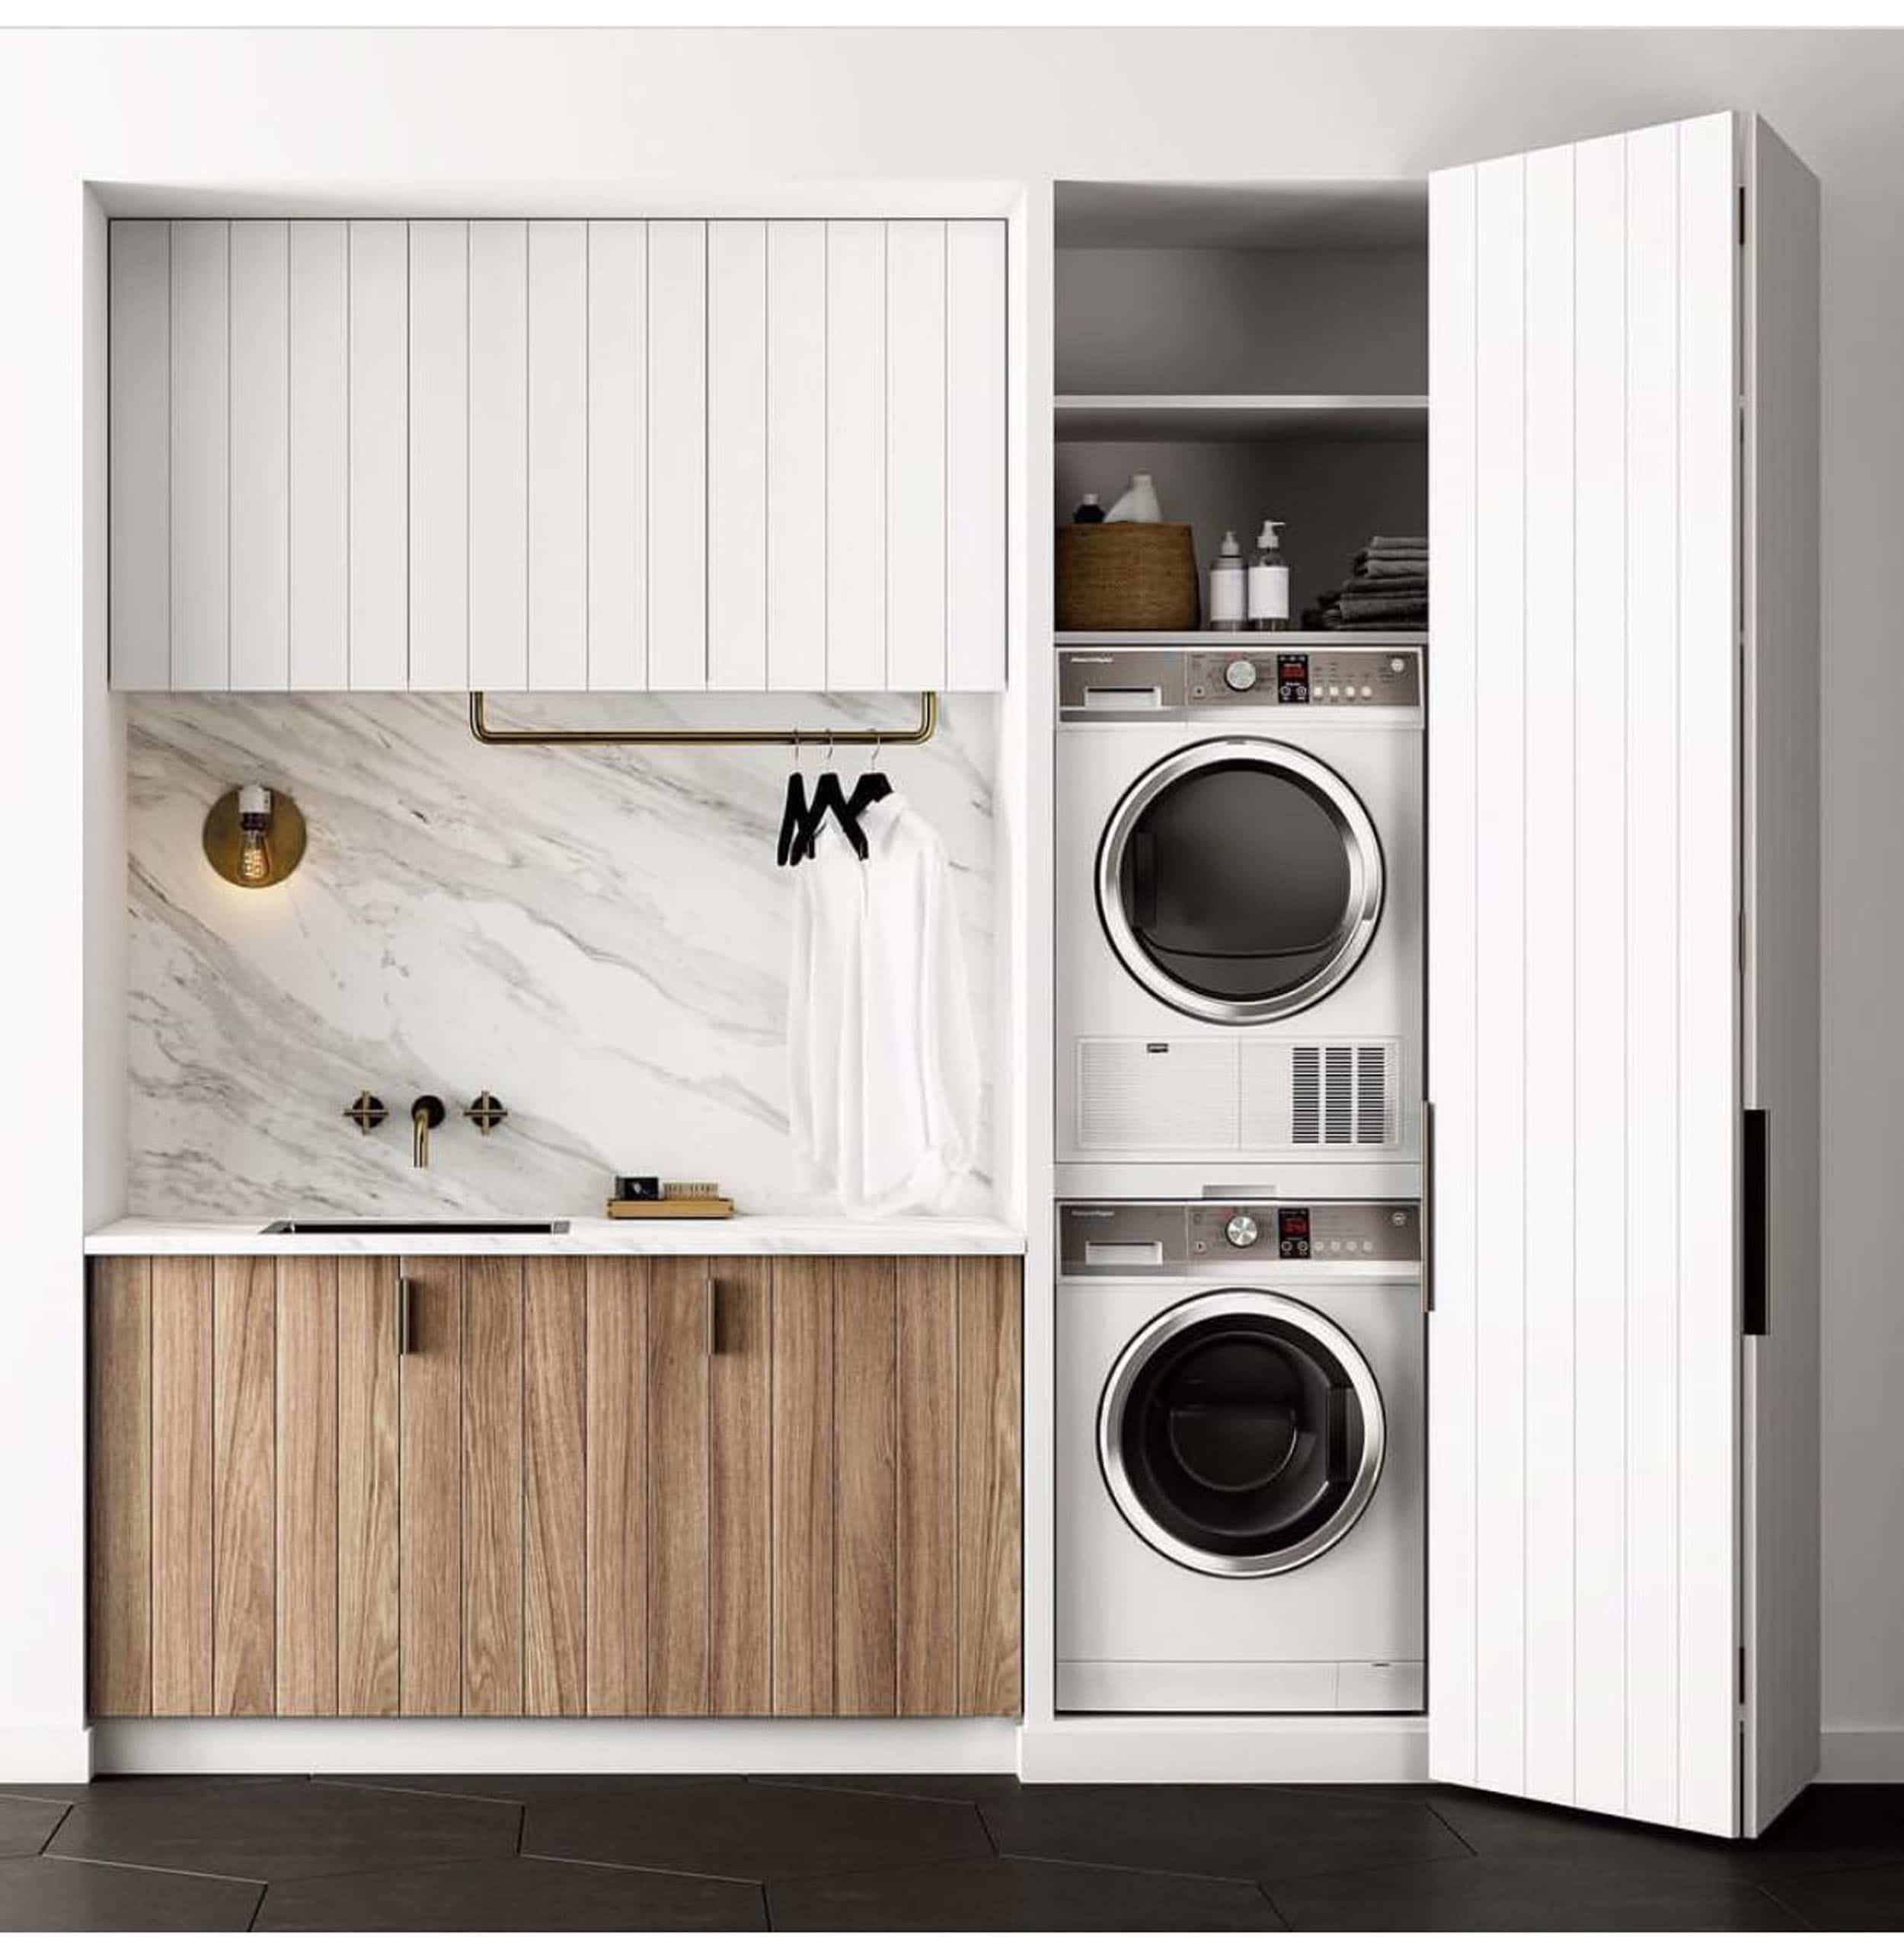 Emily Henderson how to design a laundry room 1